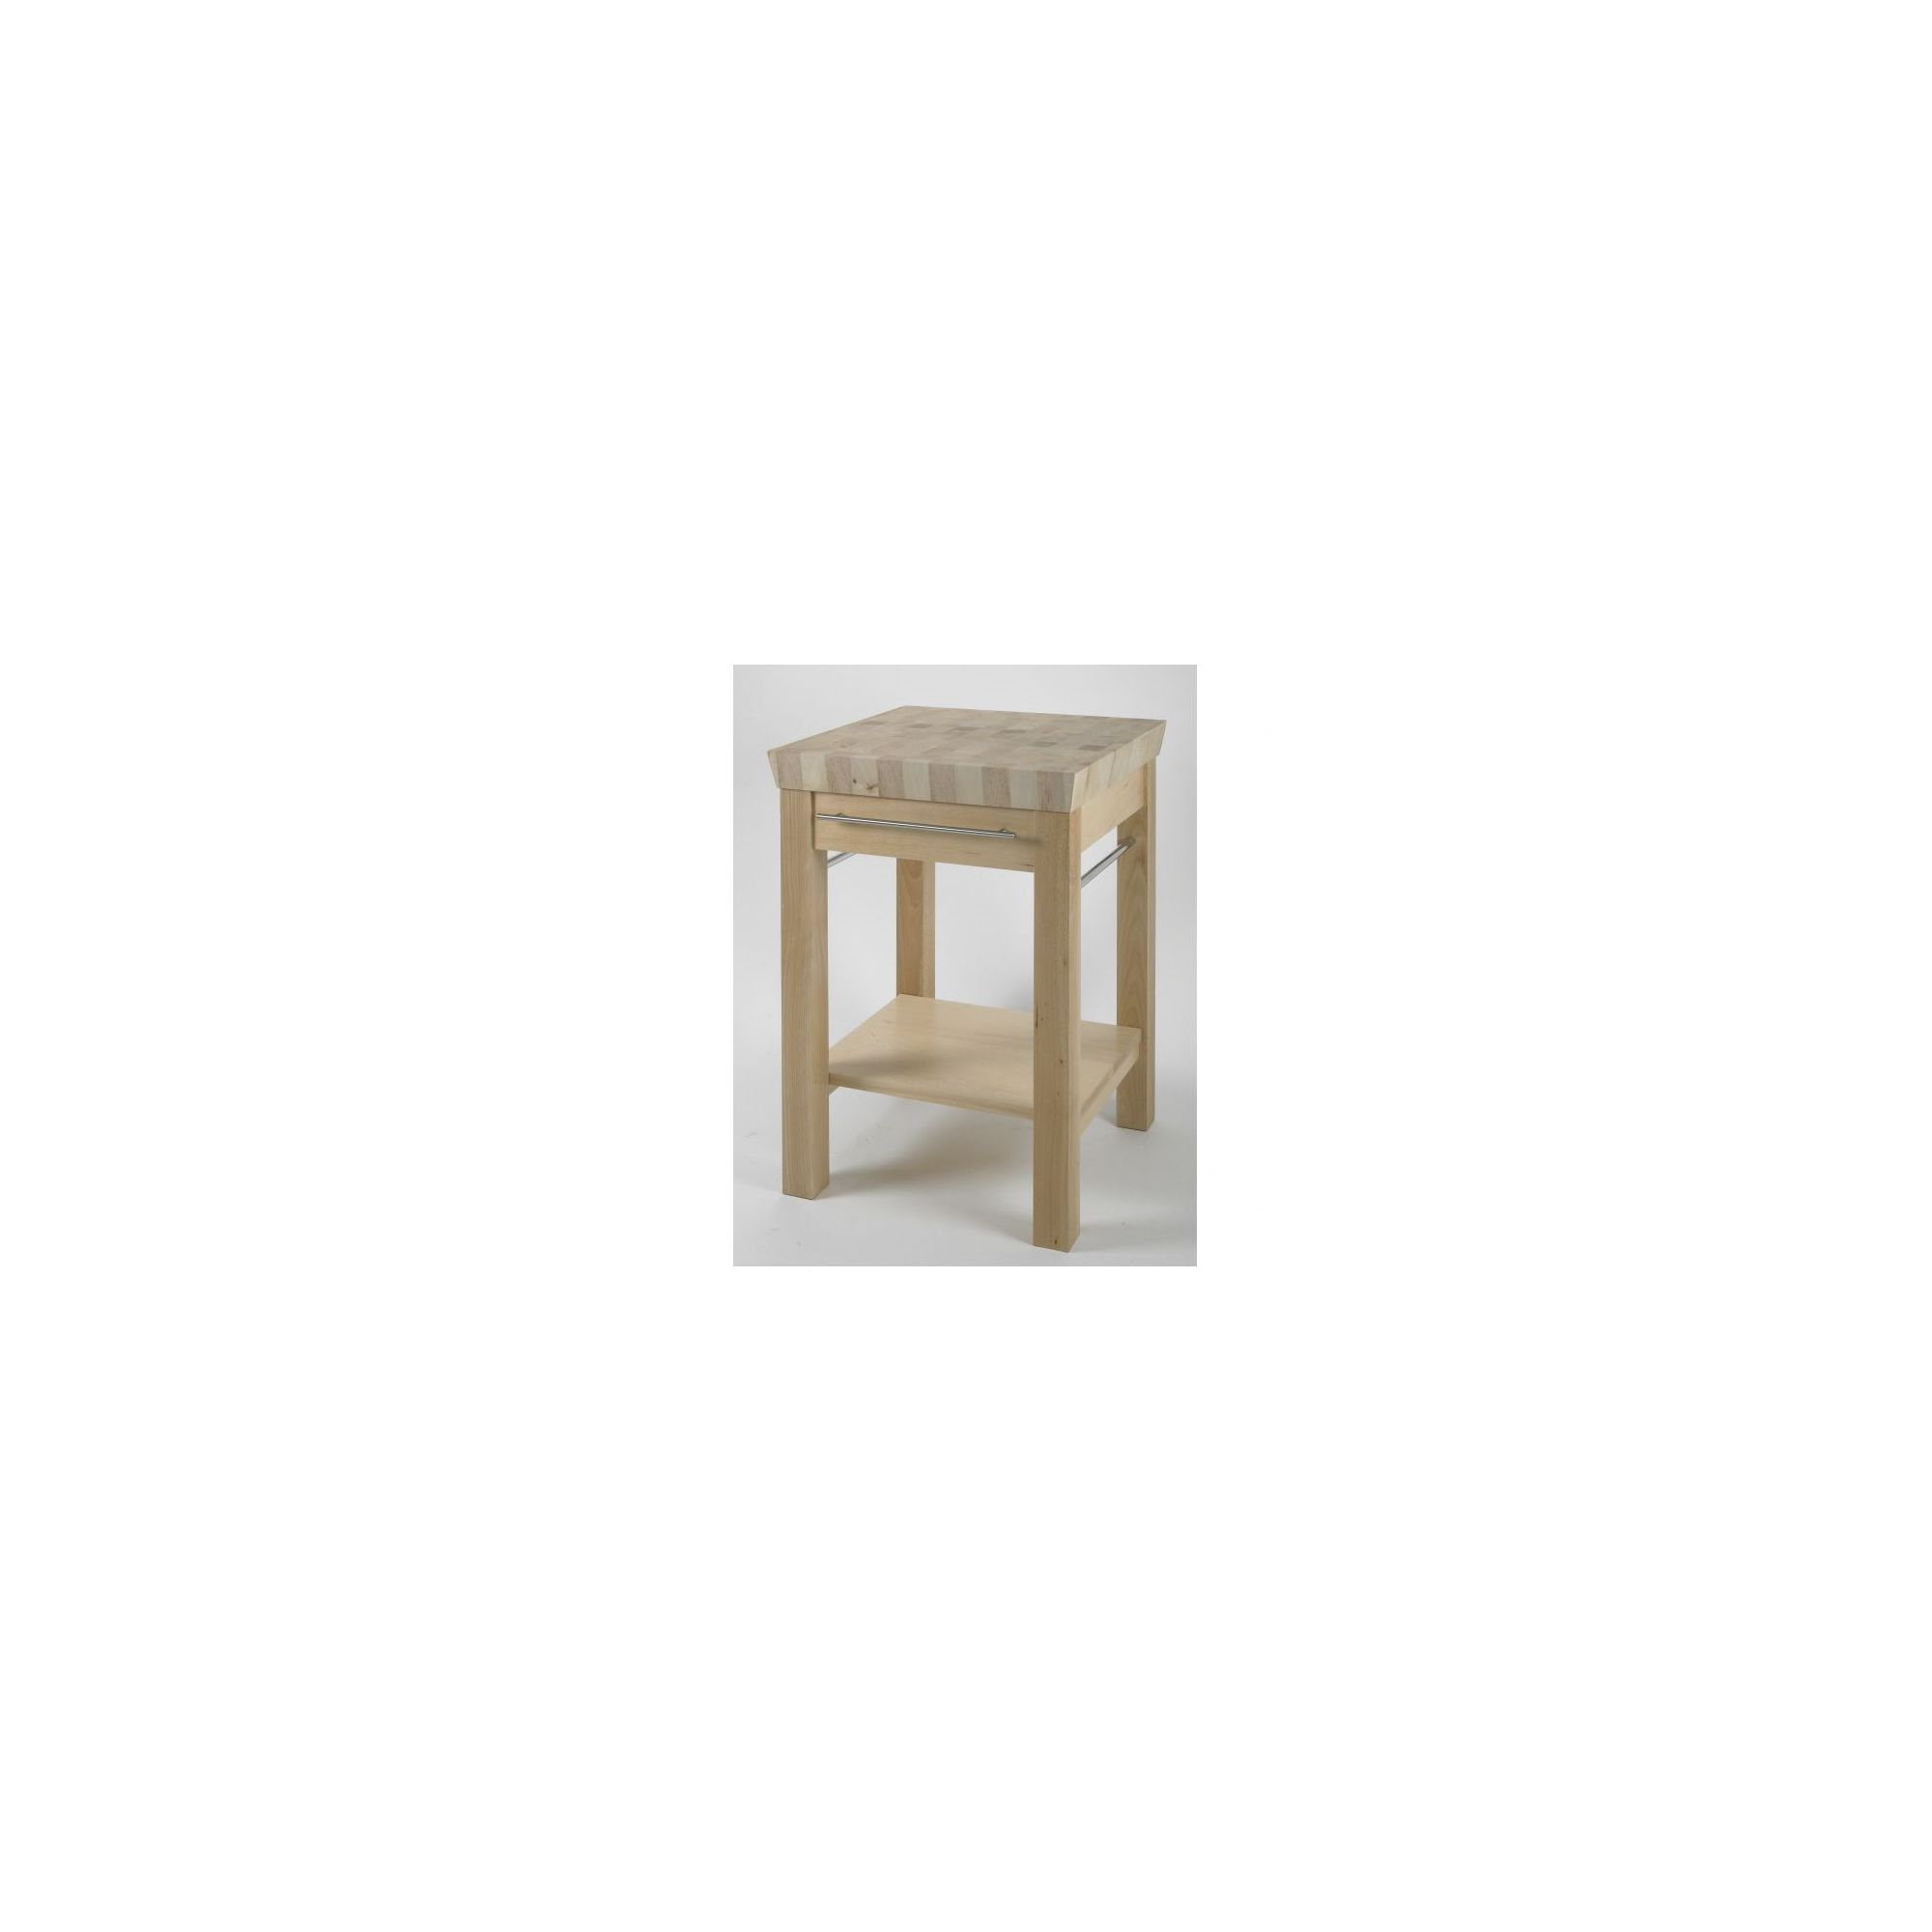 Chabret Occasional Furniture - 85cm X 50cm X 50cm at Tesco Direct